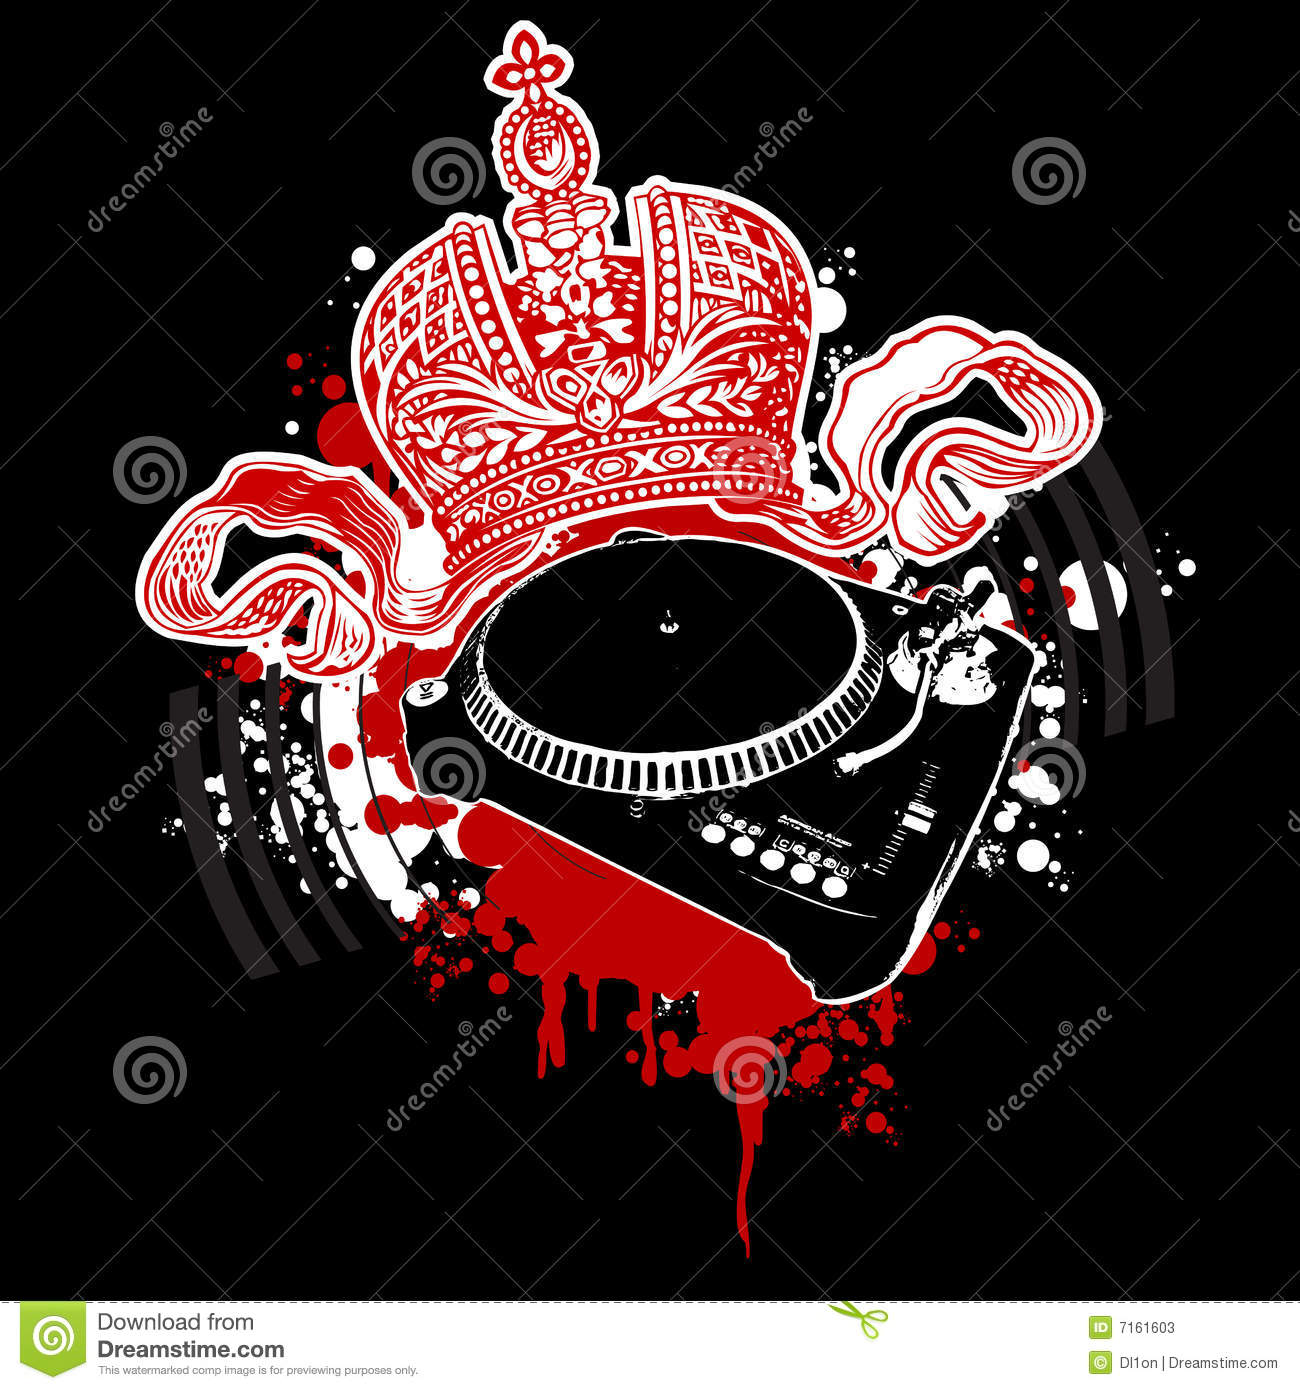 Graffiti Crown And Turntable